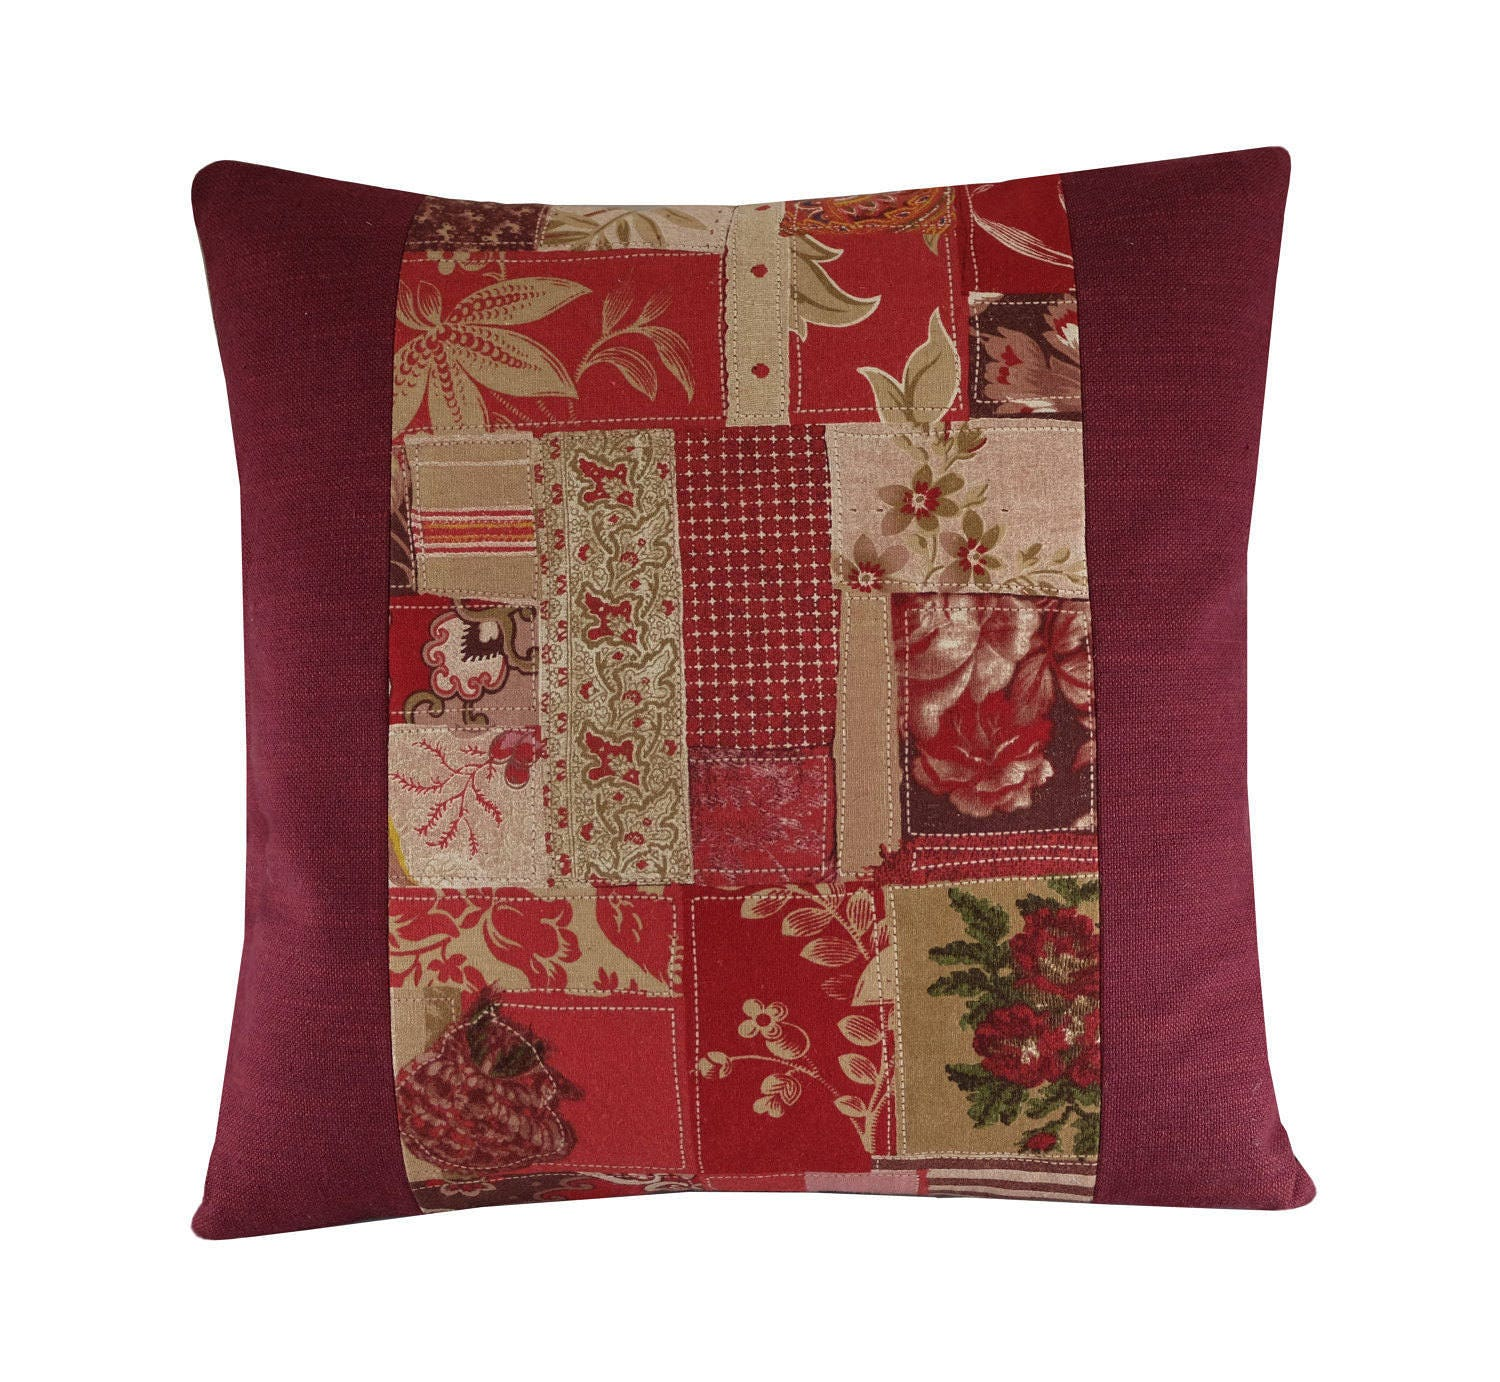 French Country Cushion Cover Rustic Throw Pillow 16x16